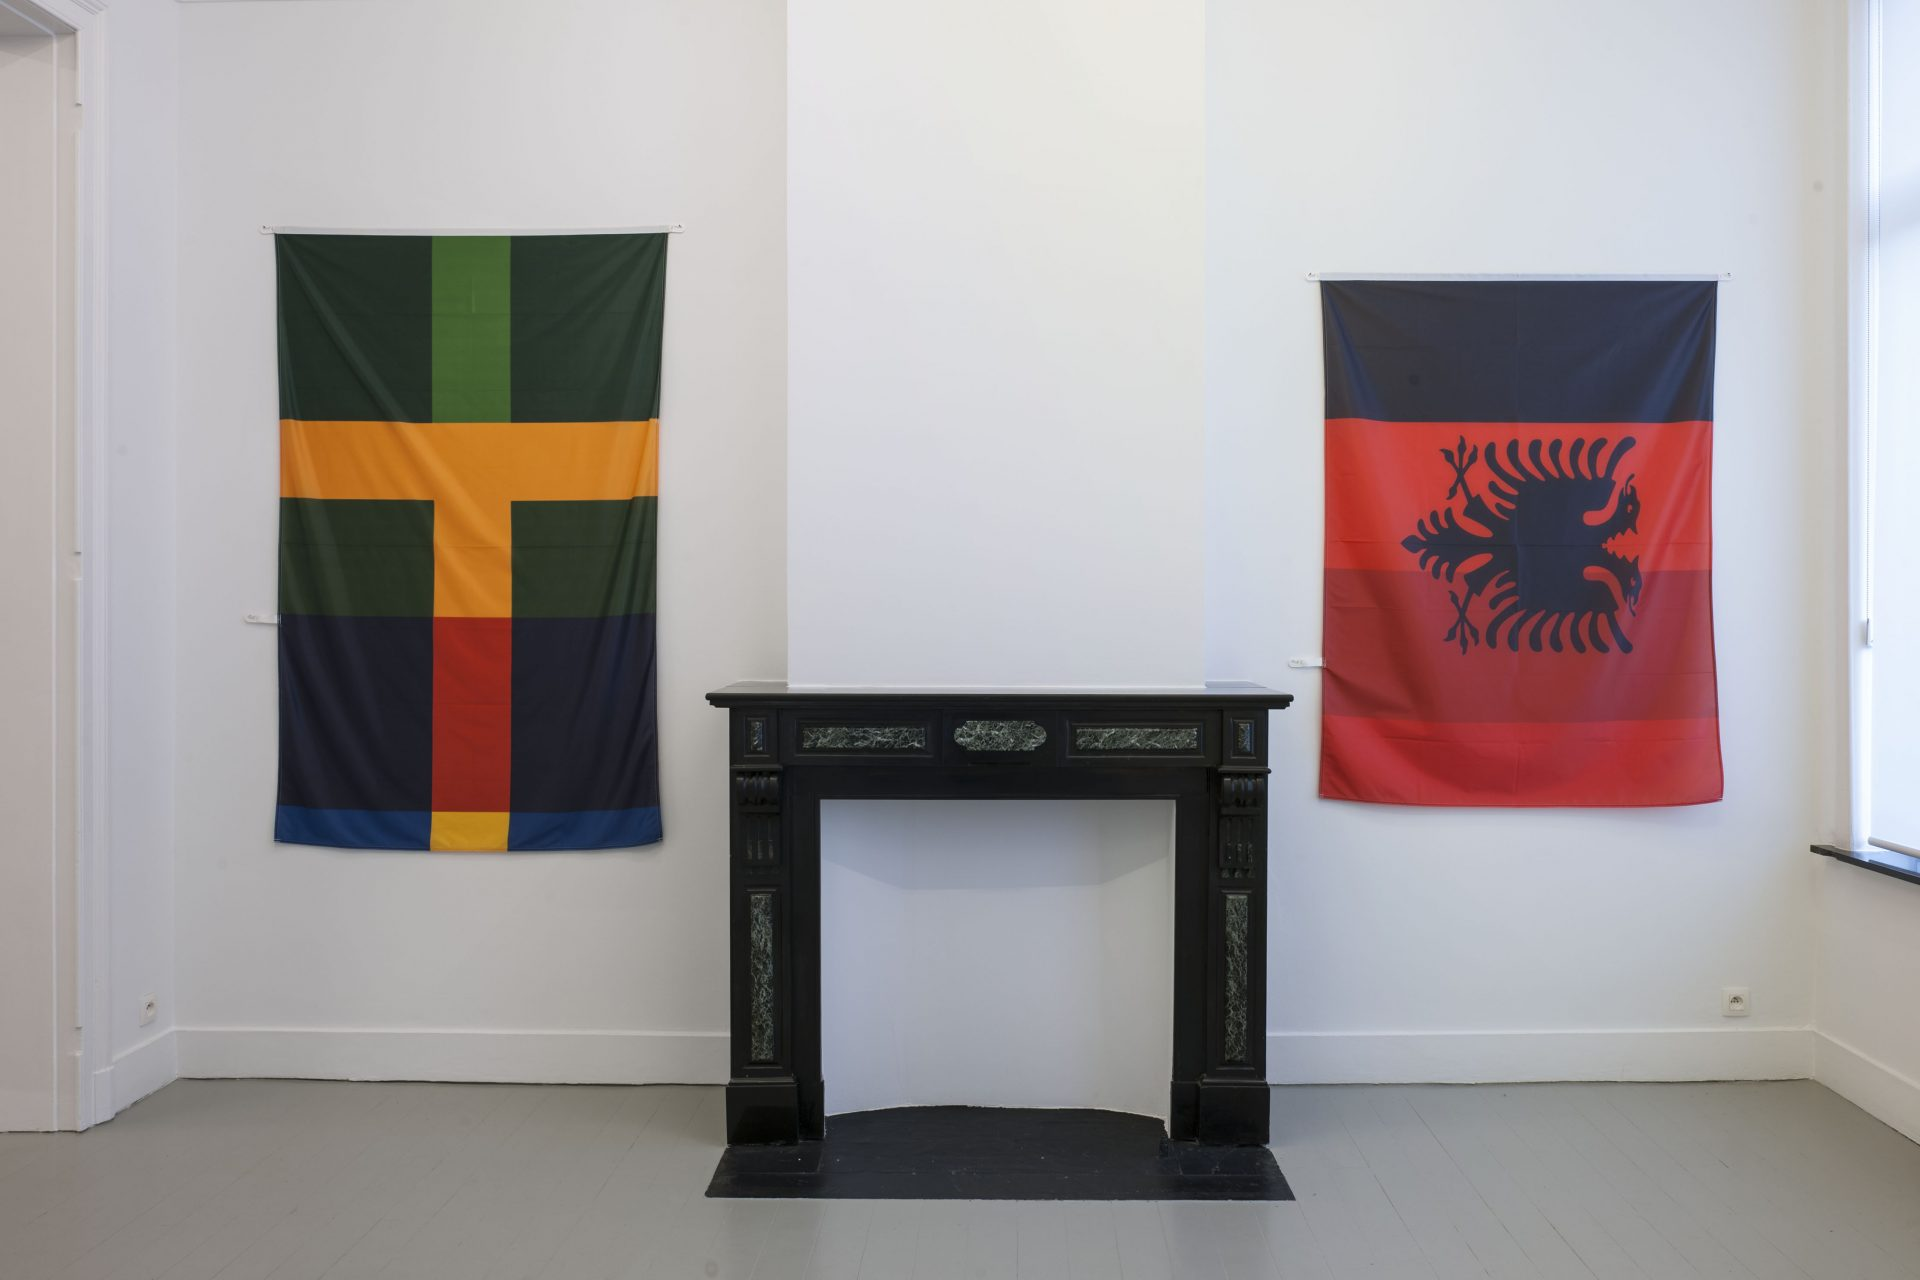 Pierre Bismuth - installation view at Jan Mot, 2019